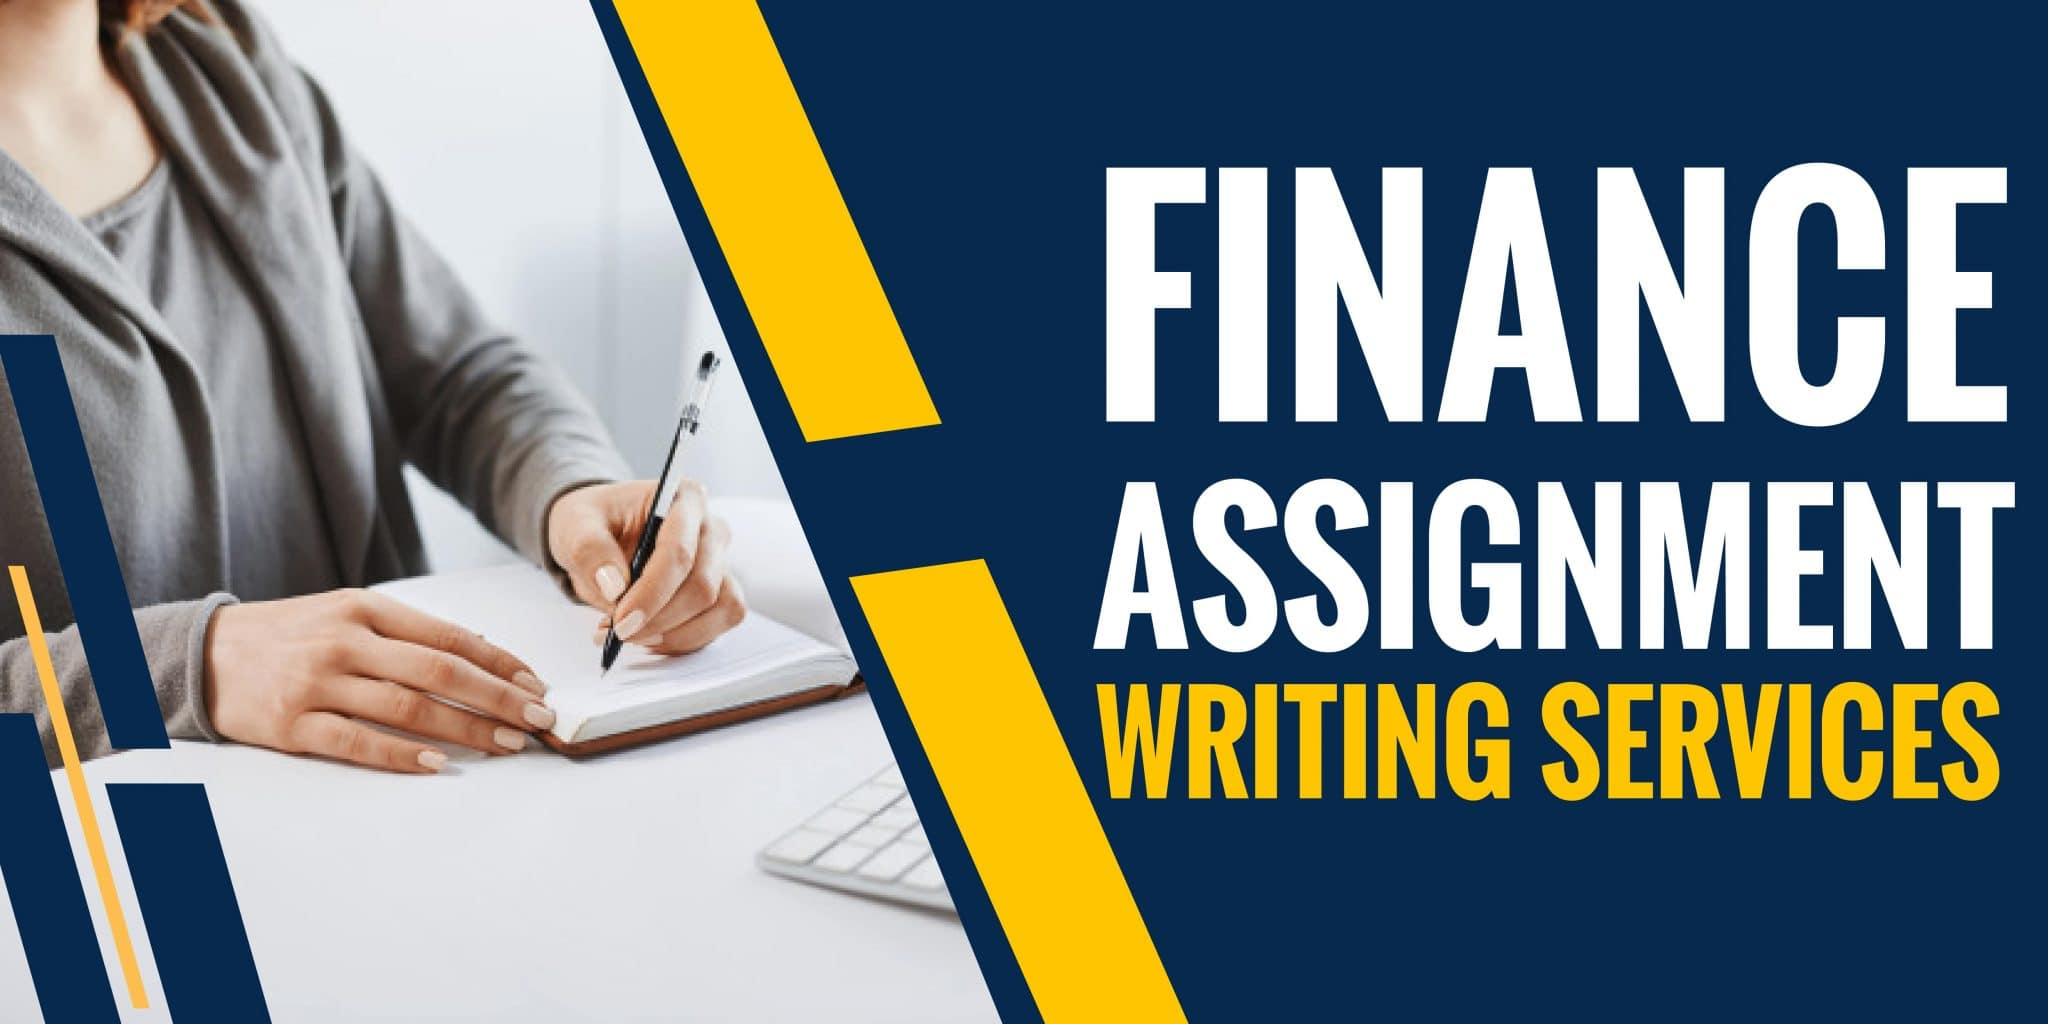 Finance Assignment Writing Services